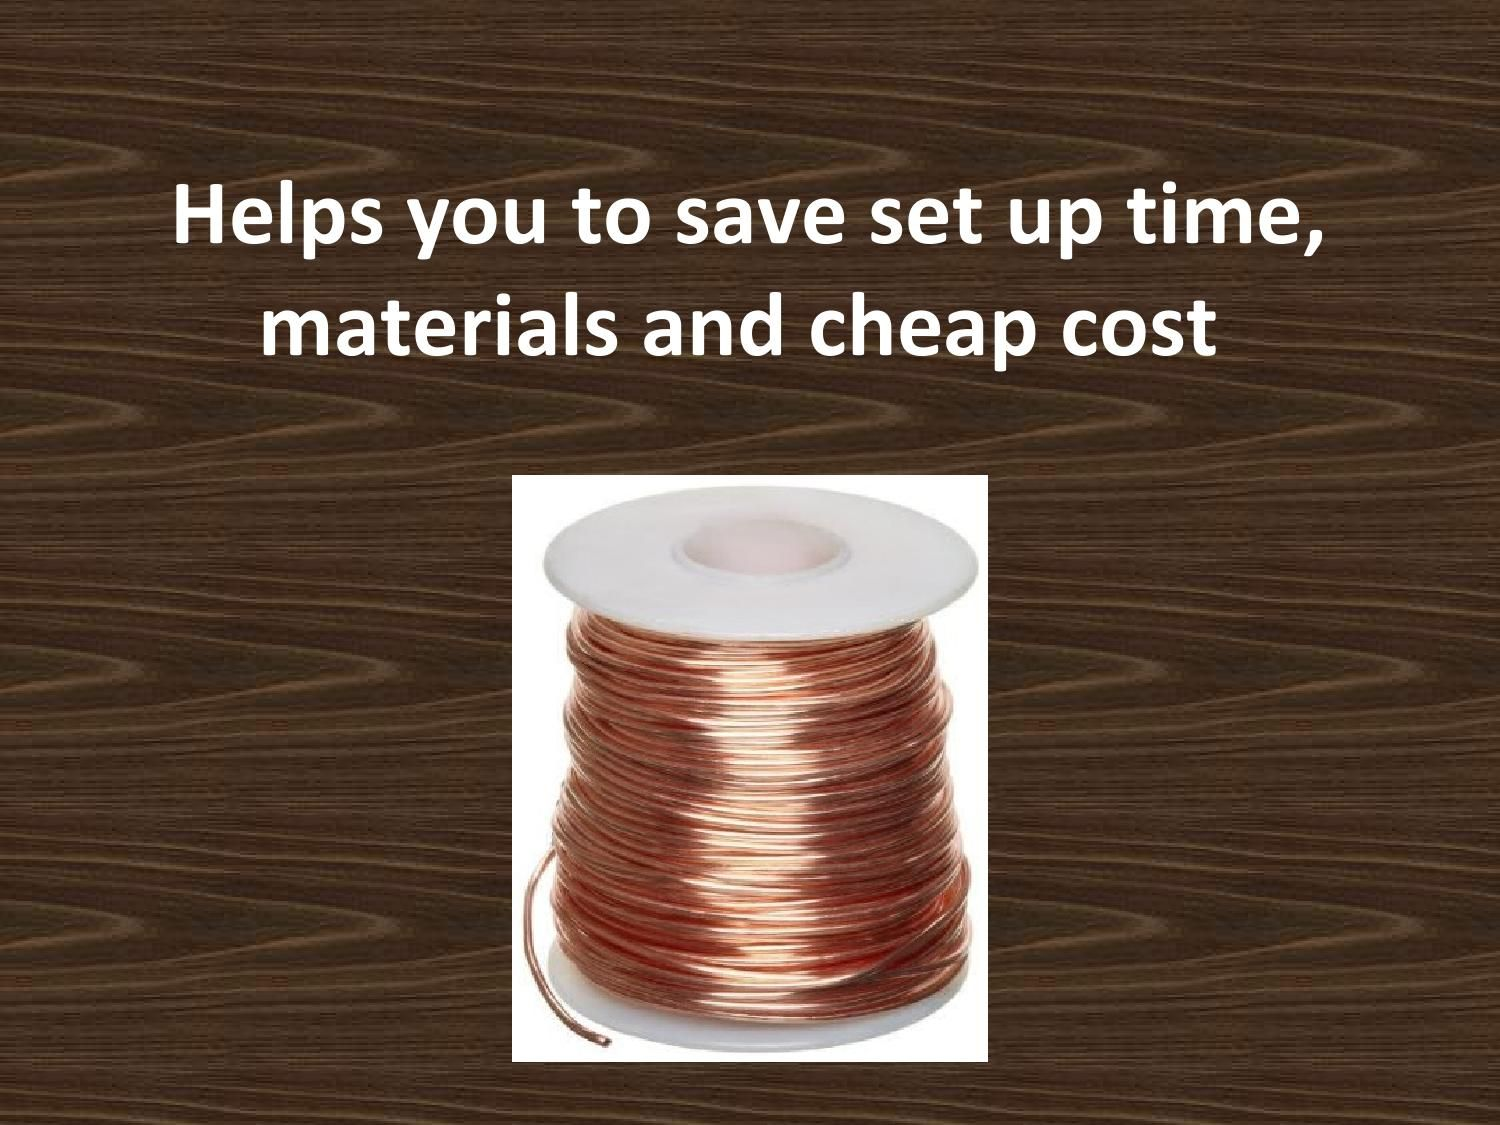 Helps you to save set up time, materials and cheap cost | Copper ...